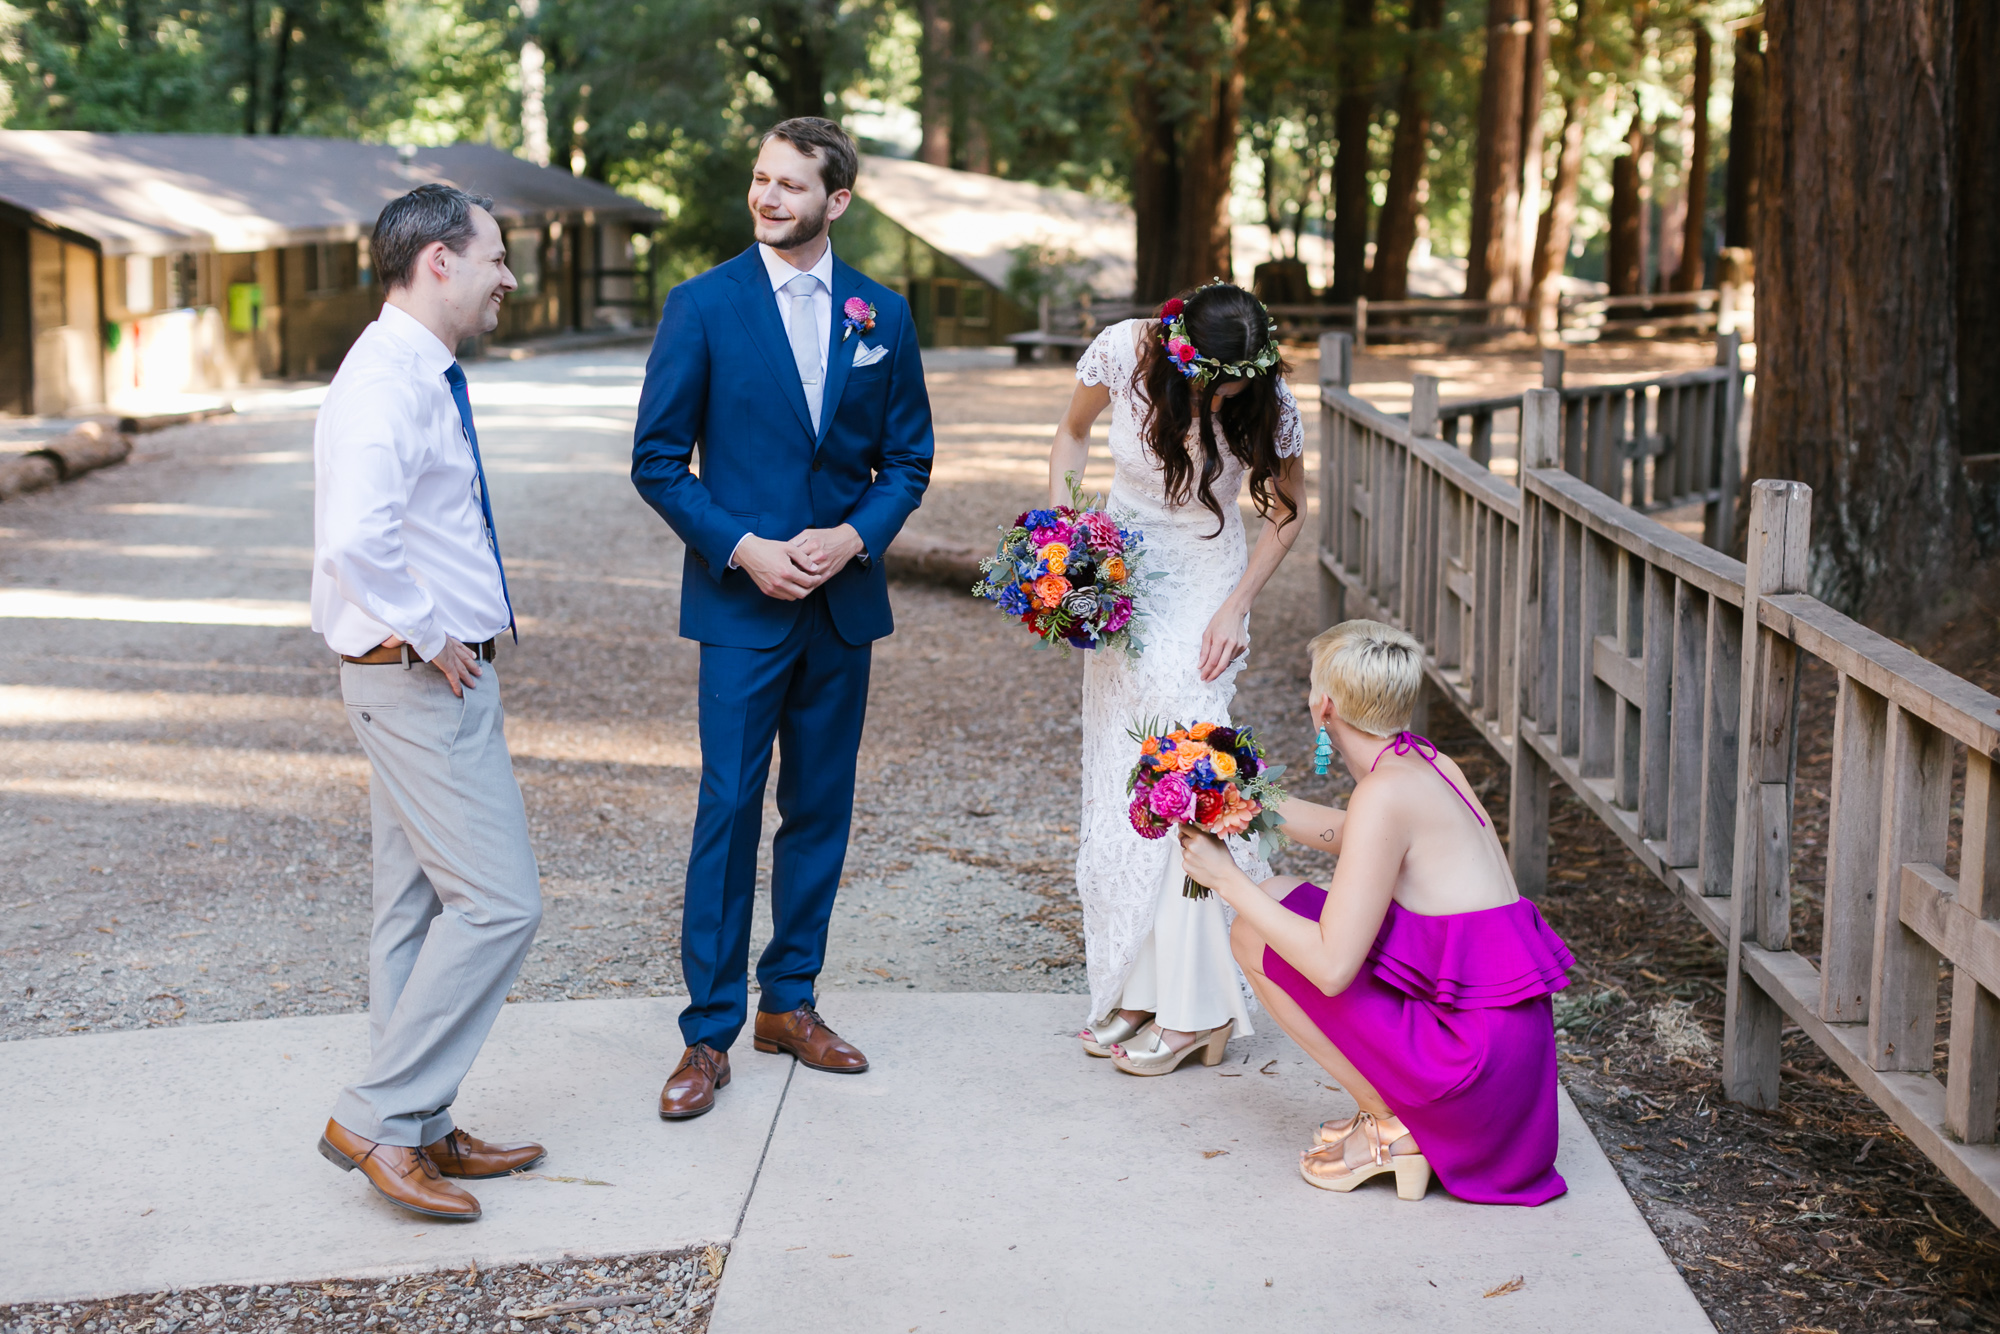 Colorful wedding couple relax with close friends after ceremony